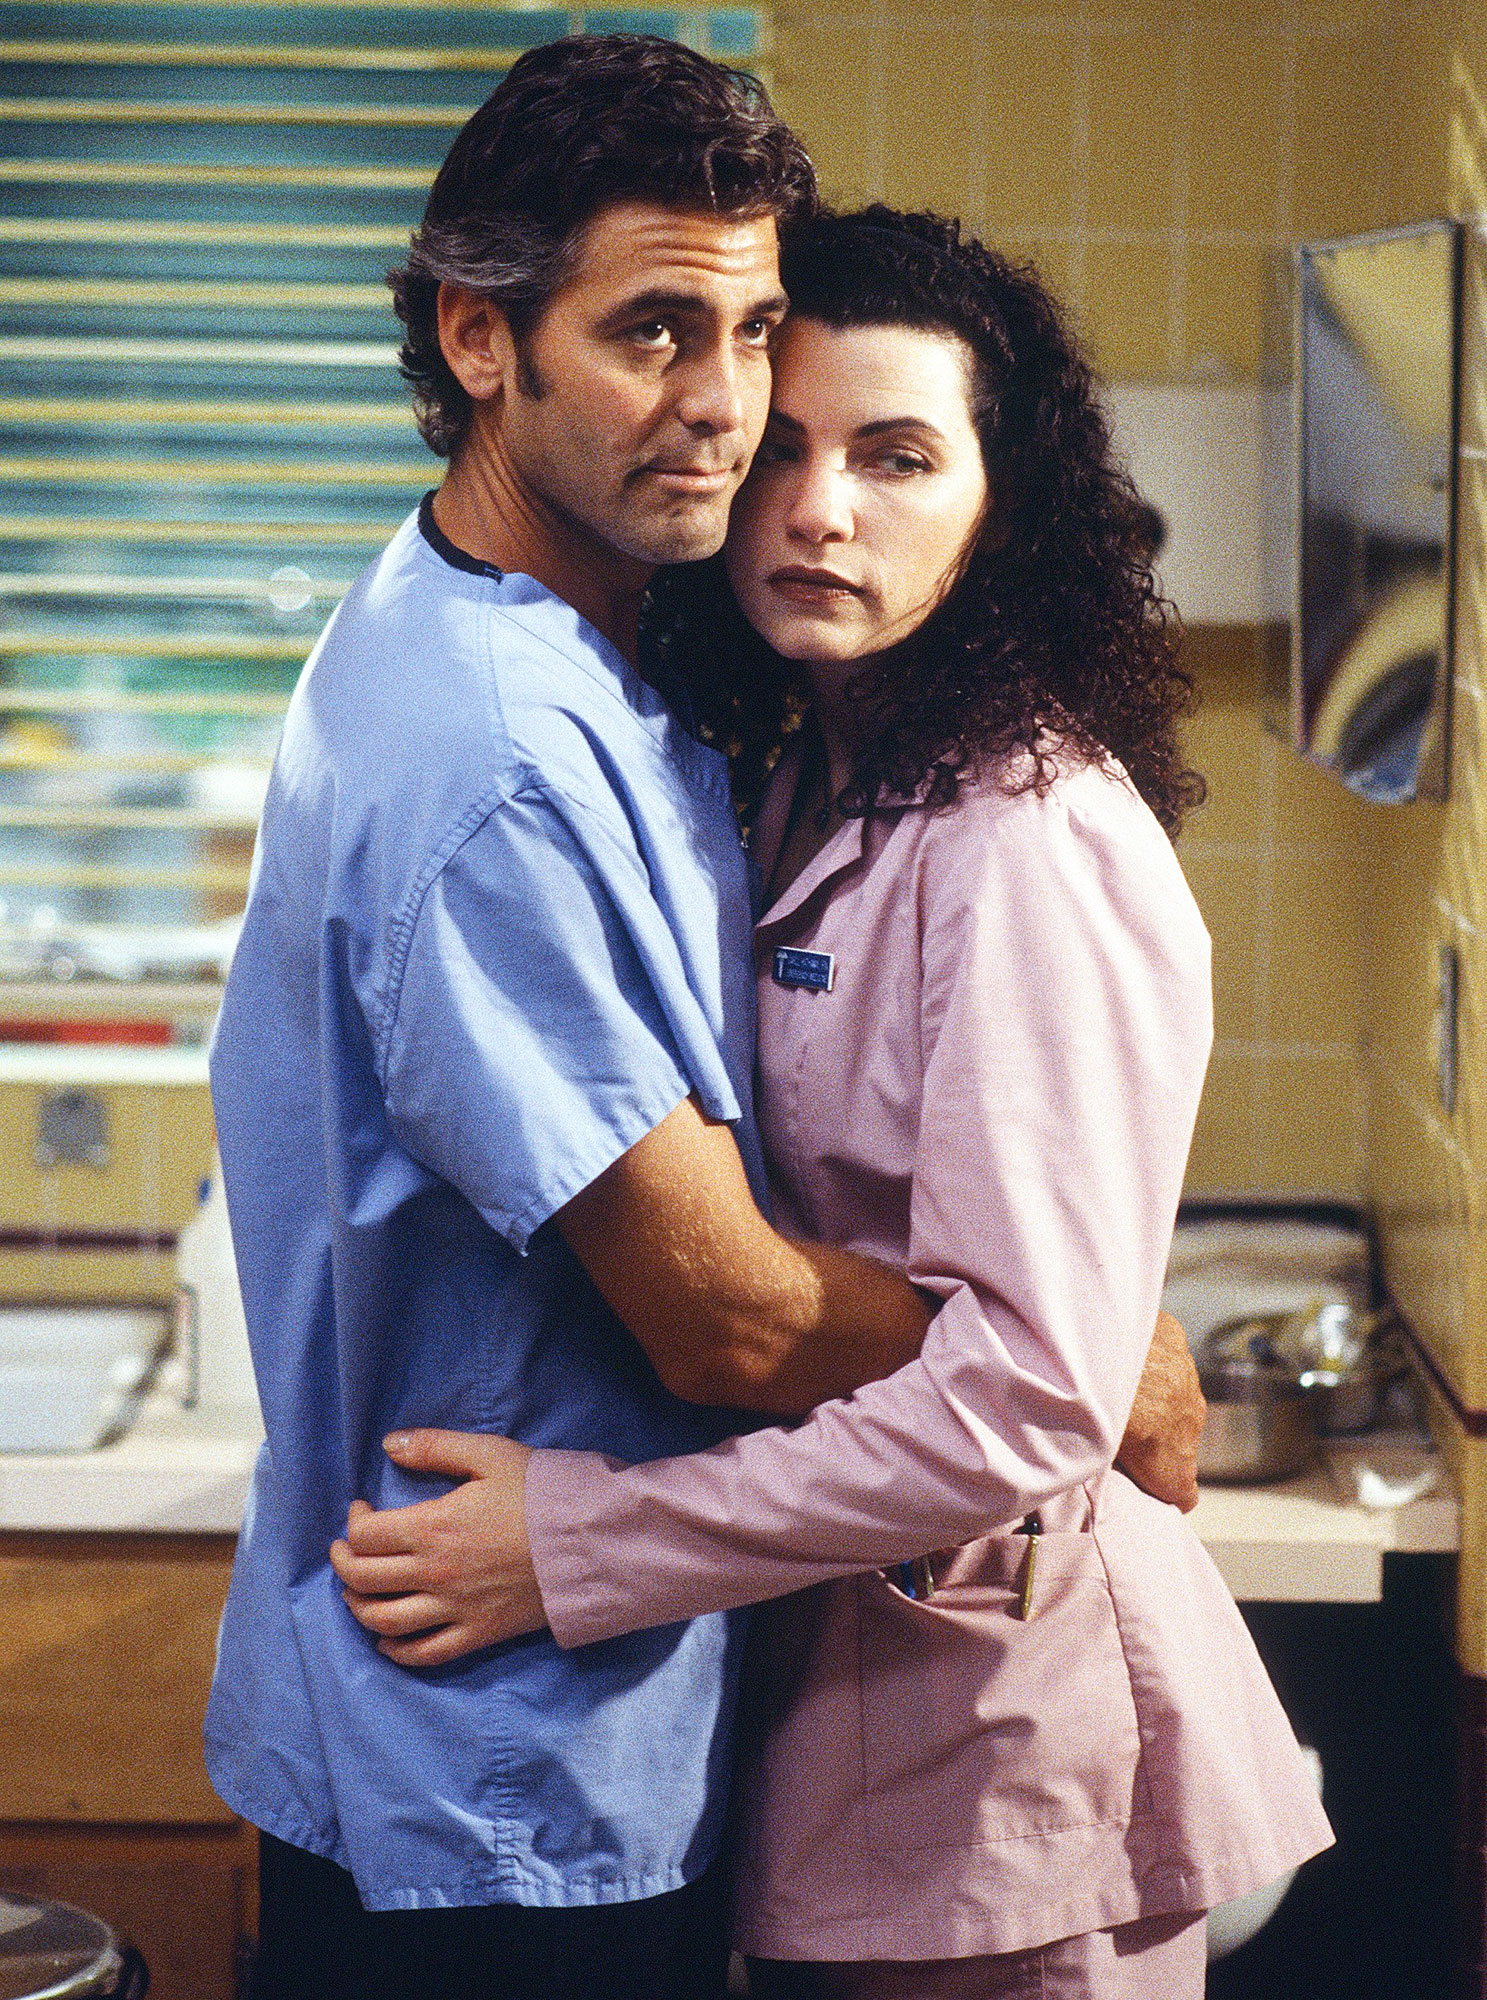 Best TV Couples ER George Clooney Julianna Margulies - Show: ER Actors: George Clooney and Julianna Margulies Network: NBC Seasons: 15